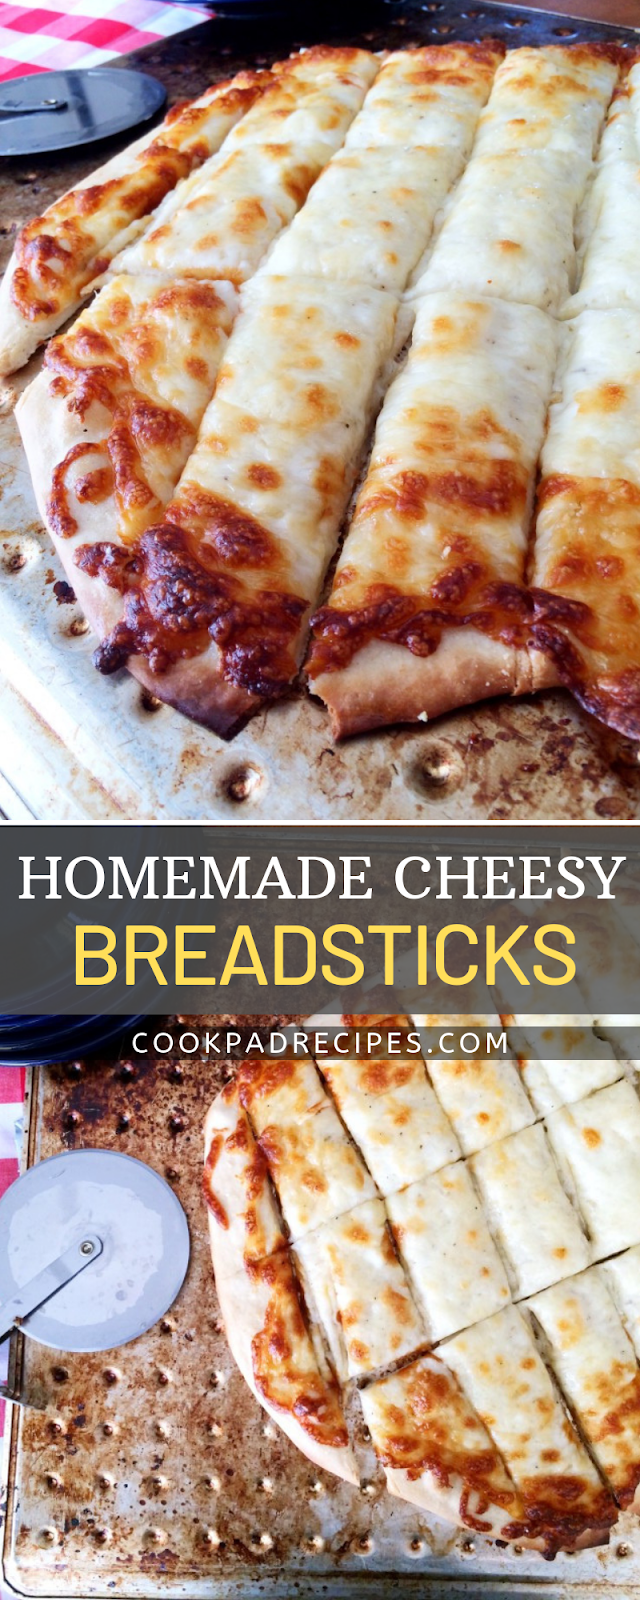 HOMEMADE CHEESY BREADSTICKS